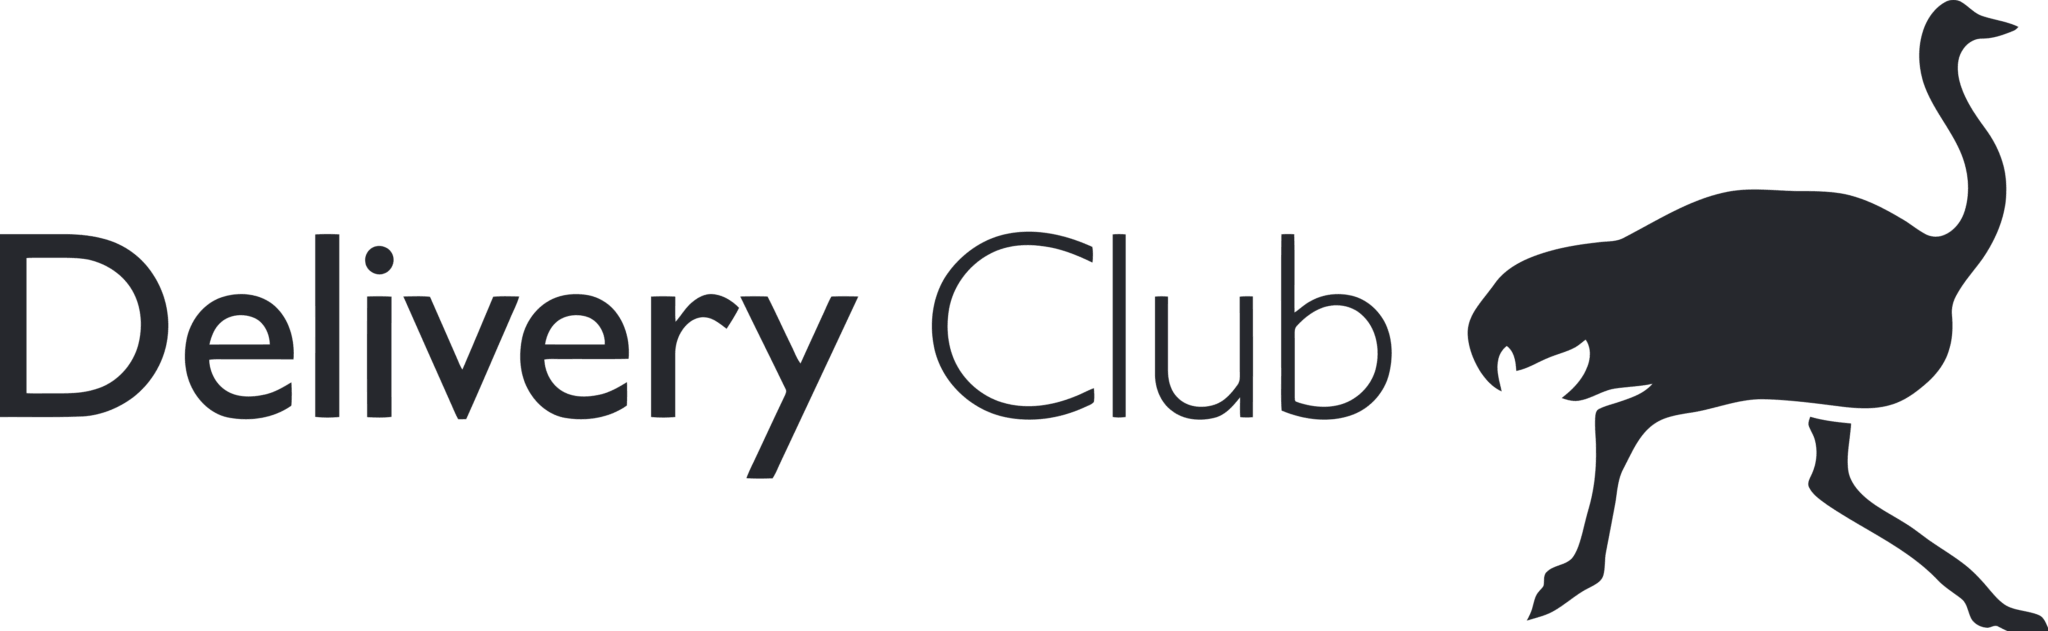 delivery_club_black